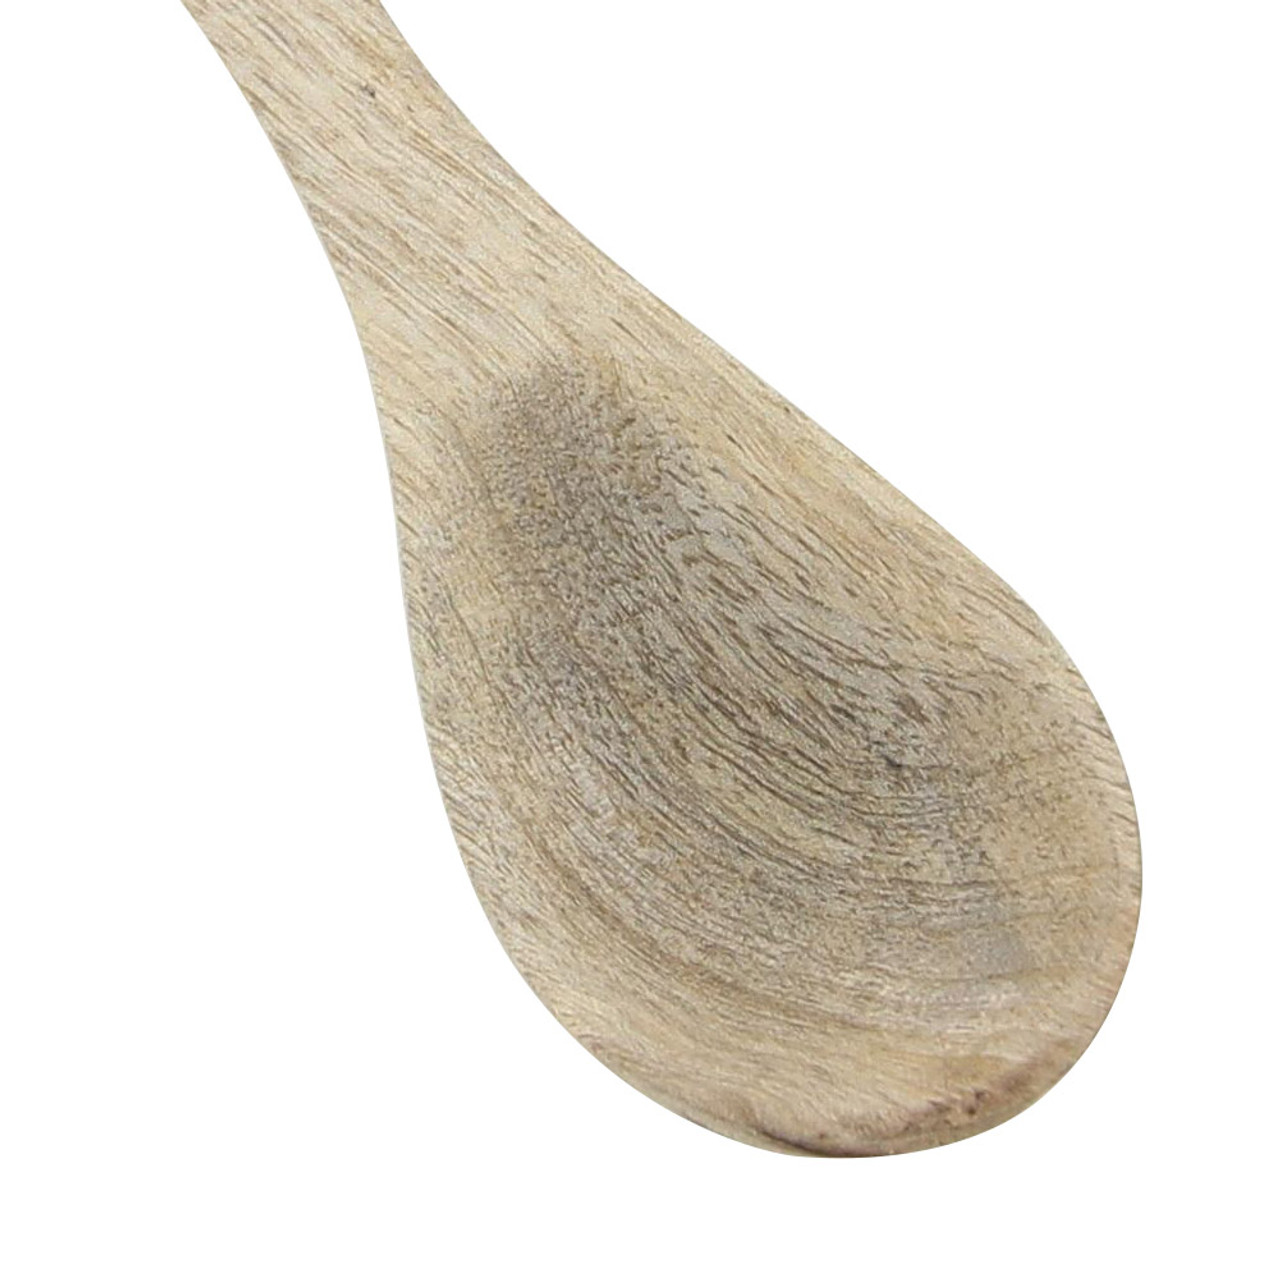 Traditional Soups on Medieval Wooden Spoon